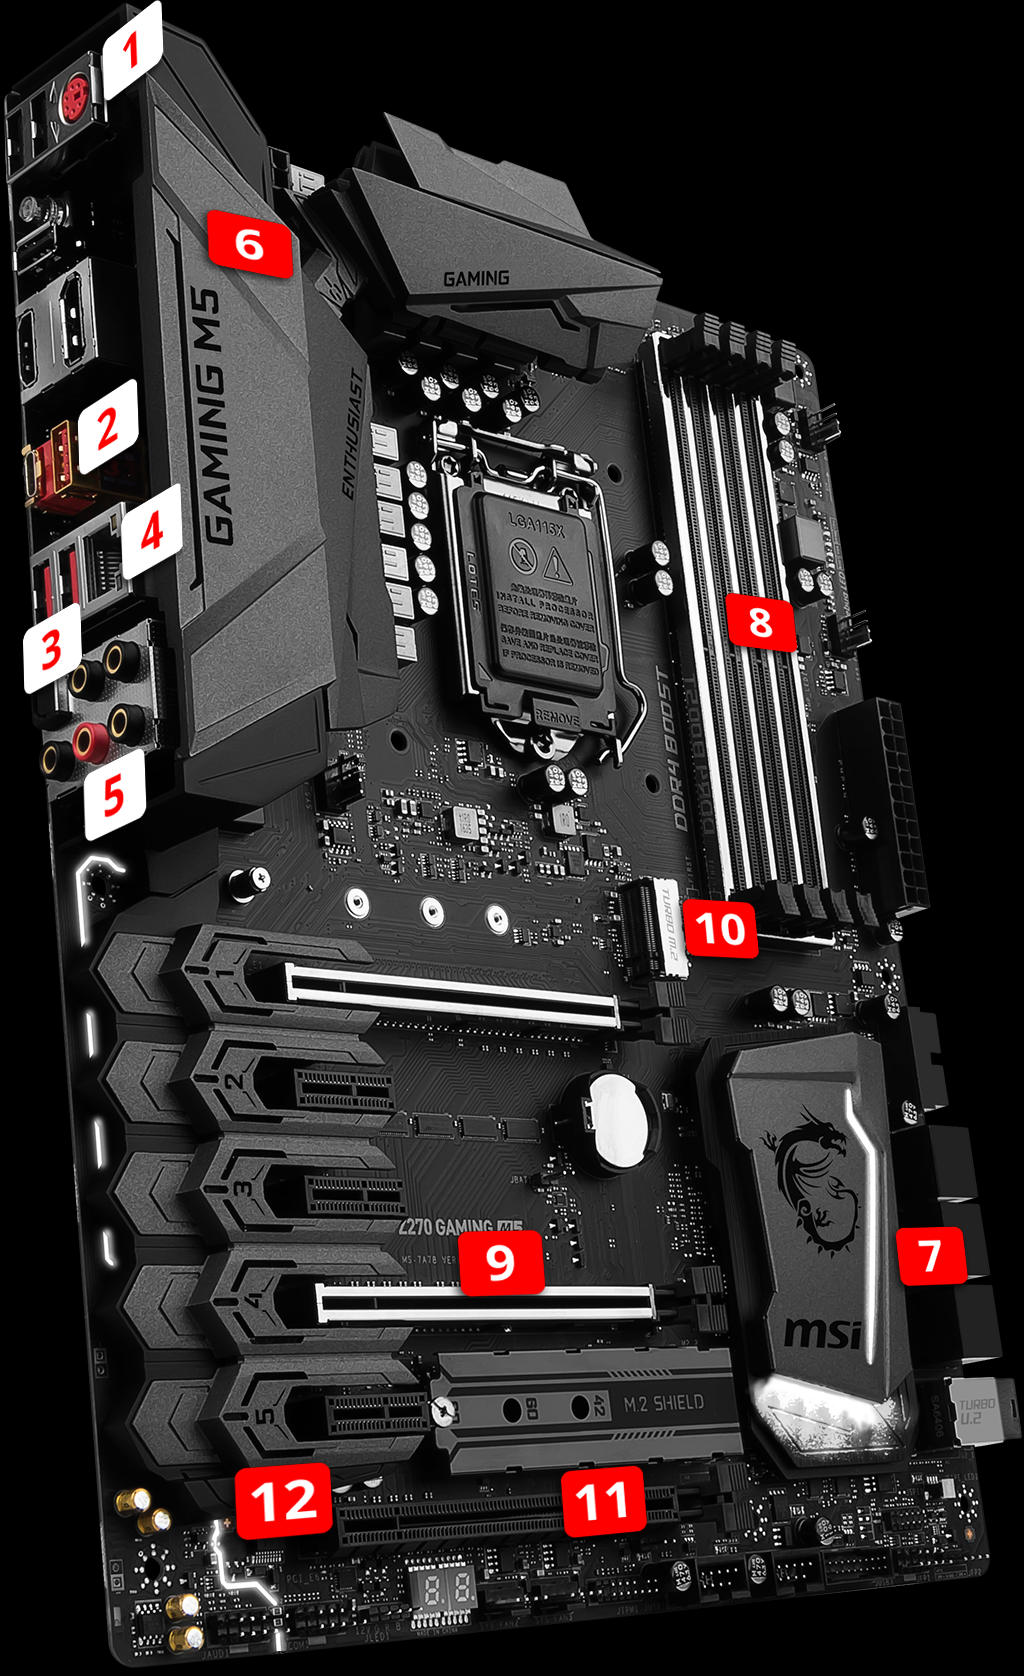 z270 gaming m5 motherboard the world leader in motherboard design msi global. Black Bedroom Furniture Sets. Home Design Ideas